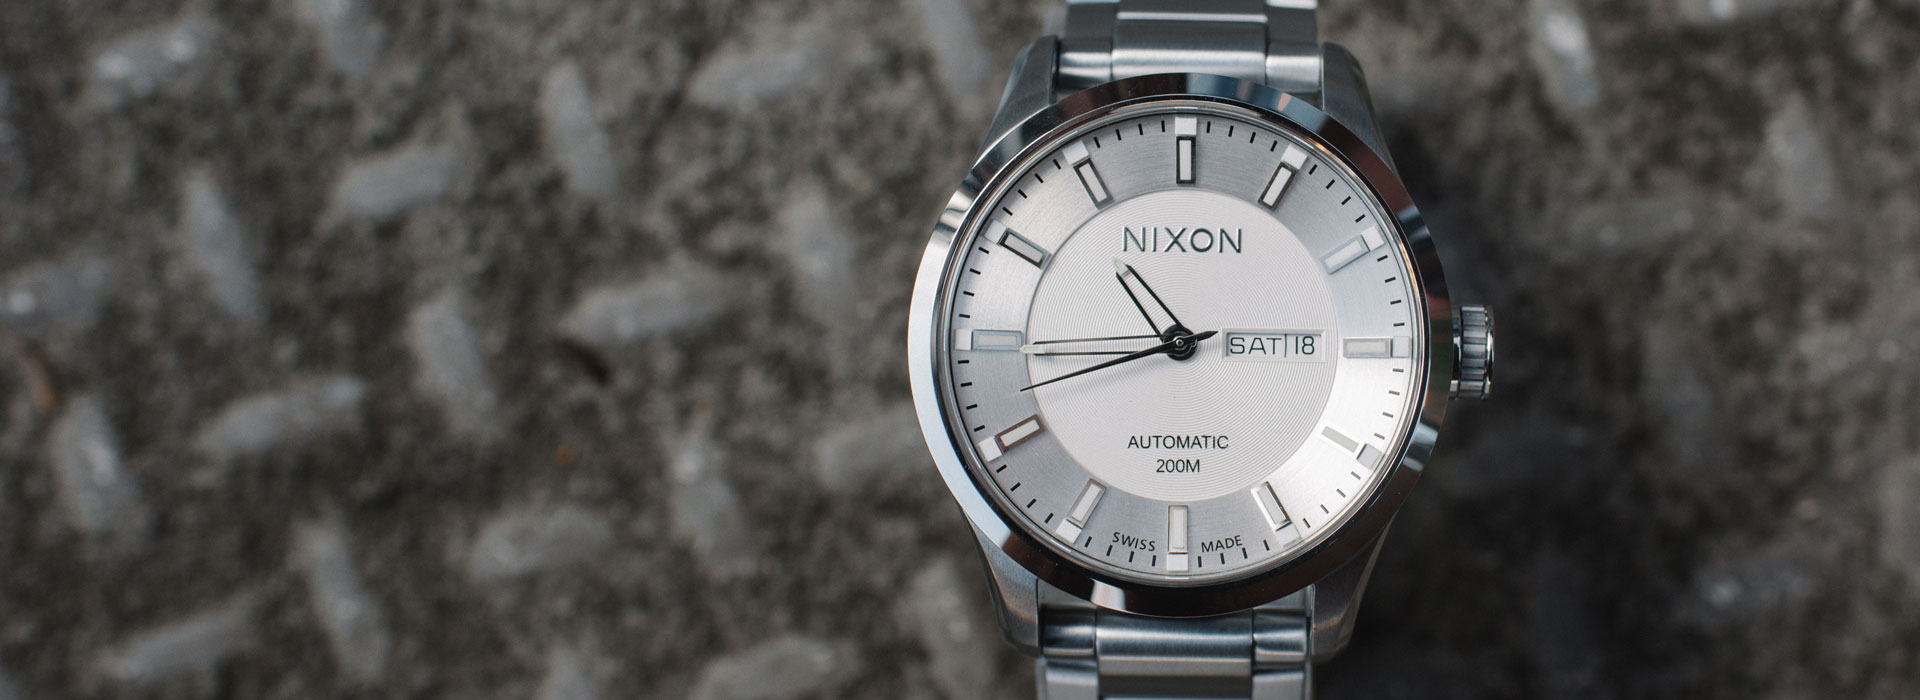 nixon automatic II sale 70% off